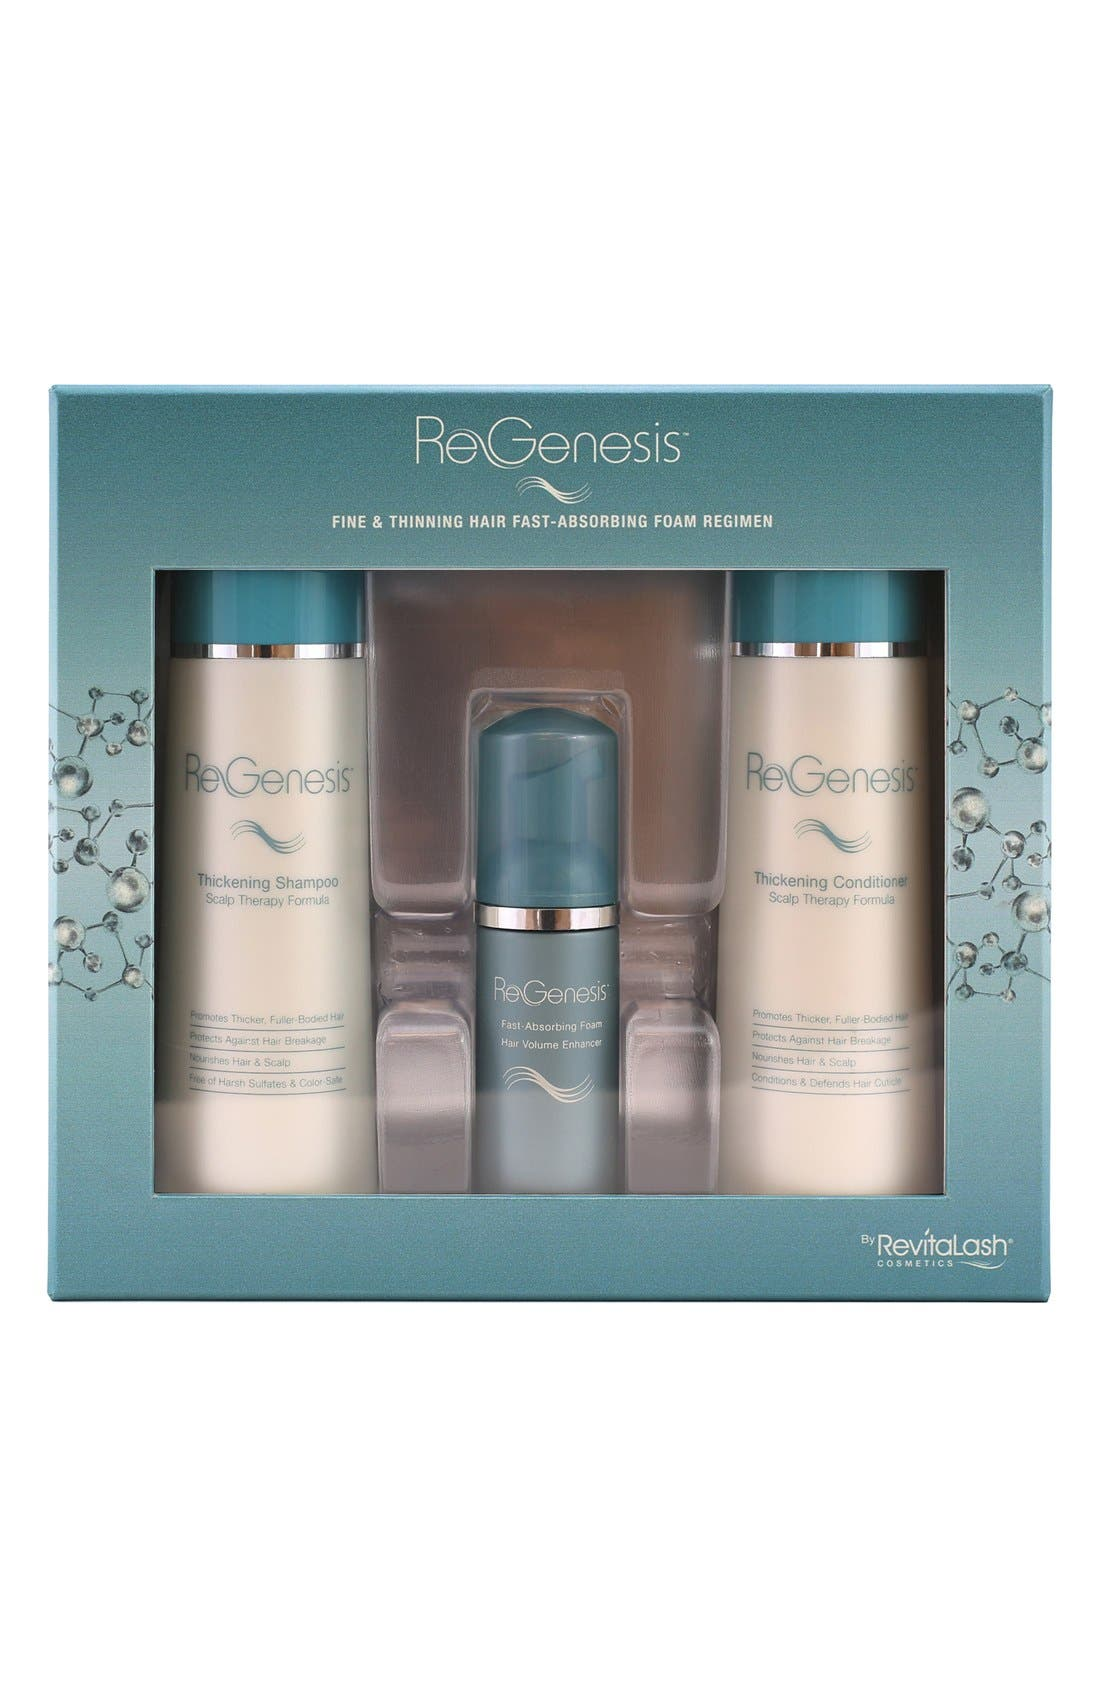 ReGenesis by RevitaLash® Total Care Fine & Thinning Hair Fast Absorbing Foam Regimen ($219 Value)